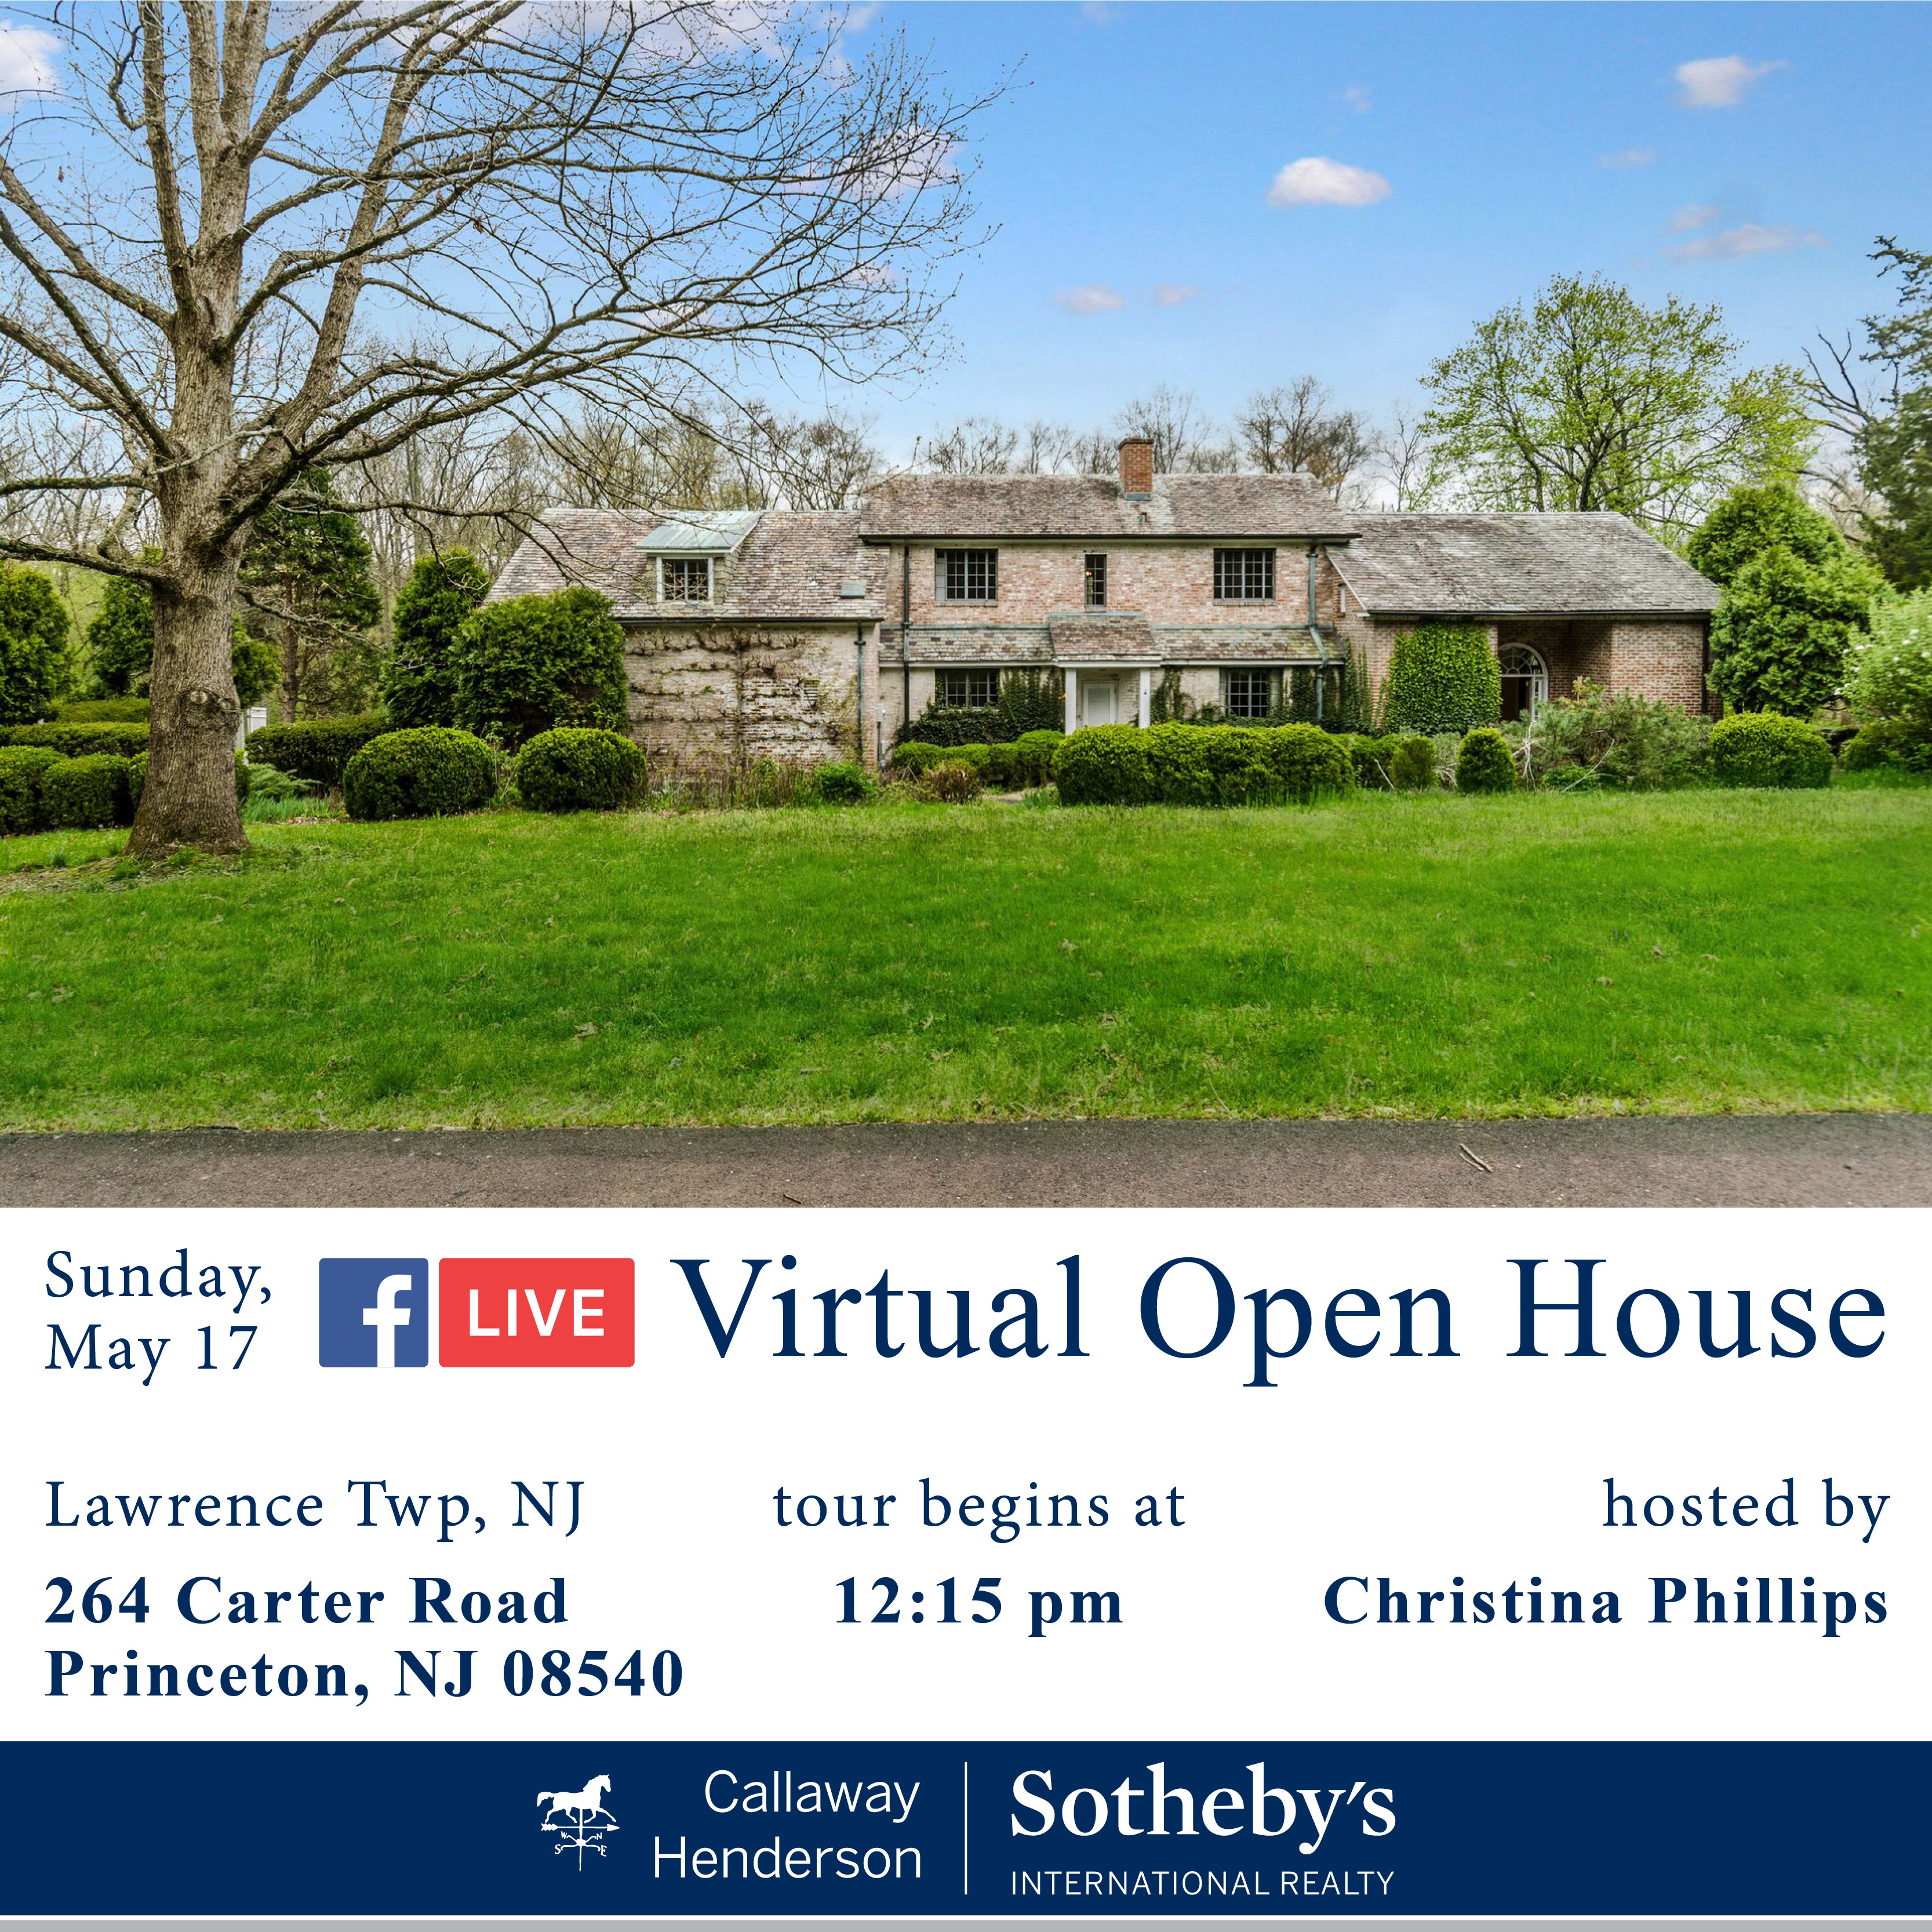 20200517 Live Virtual Open House Template-Carter Road 264